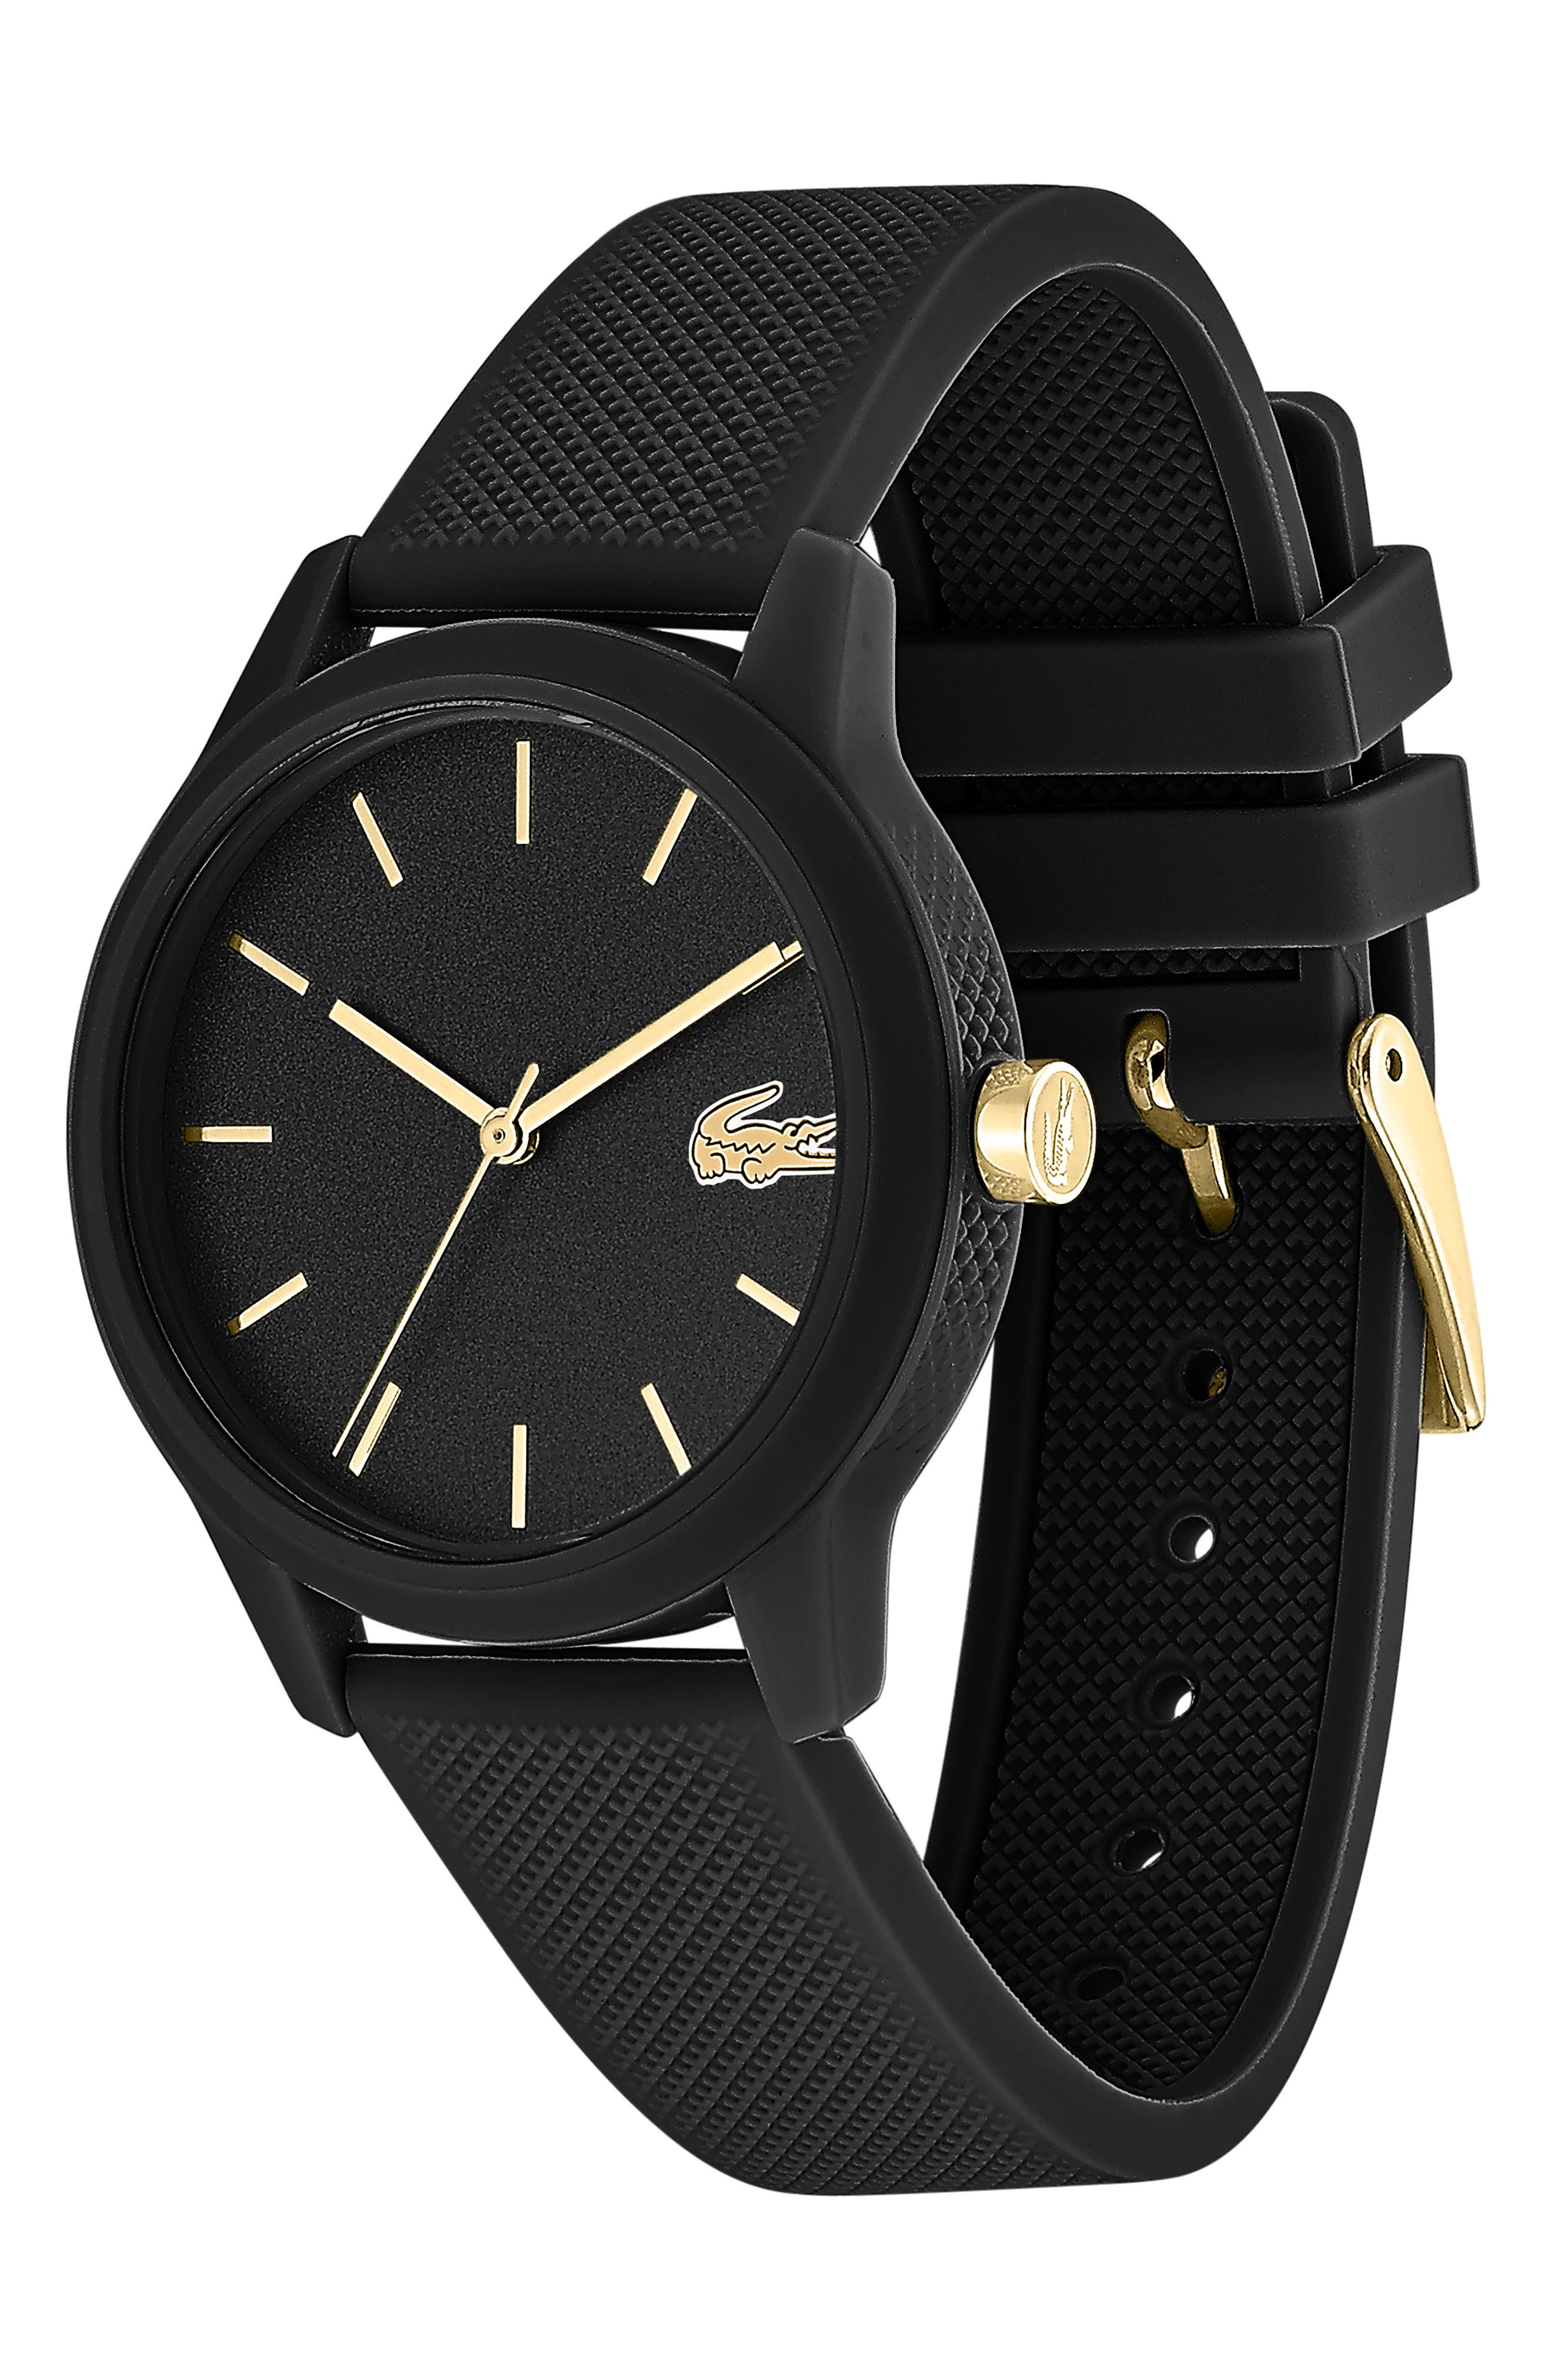 LACOSTE, 12.12 Silicone Strap Watch, 36mm, Alternate thumbnail 3, color, BLACK